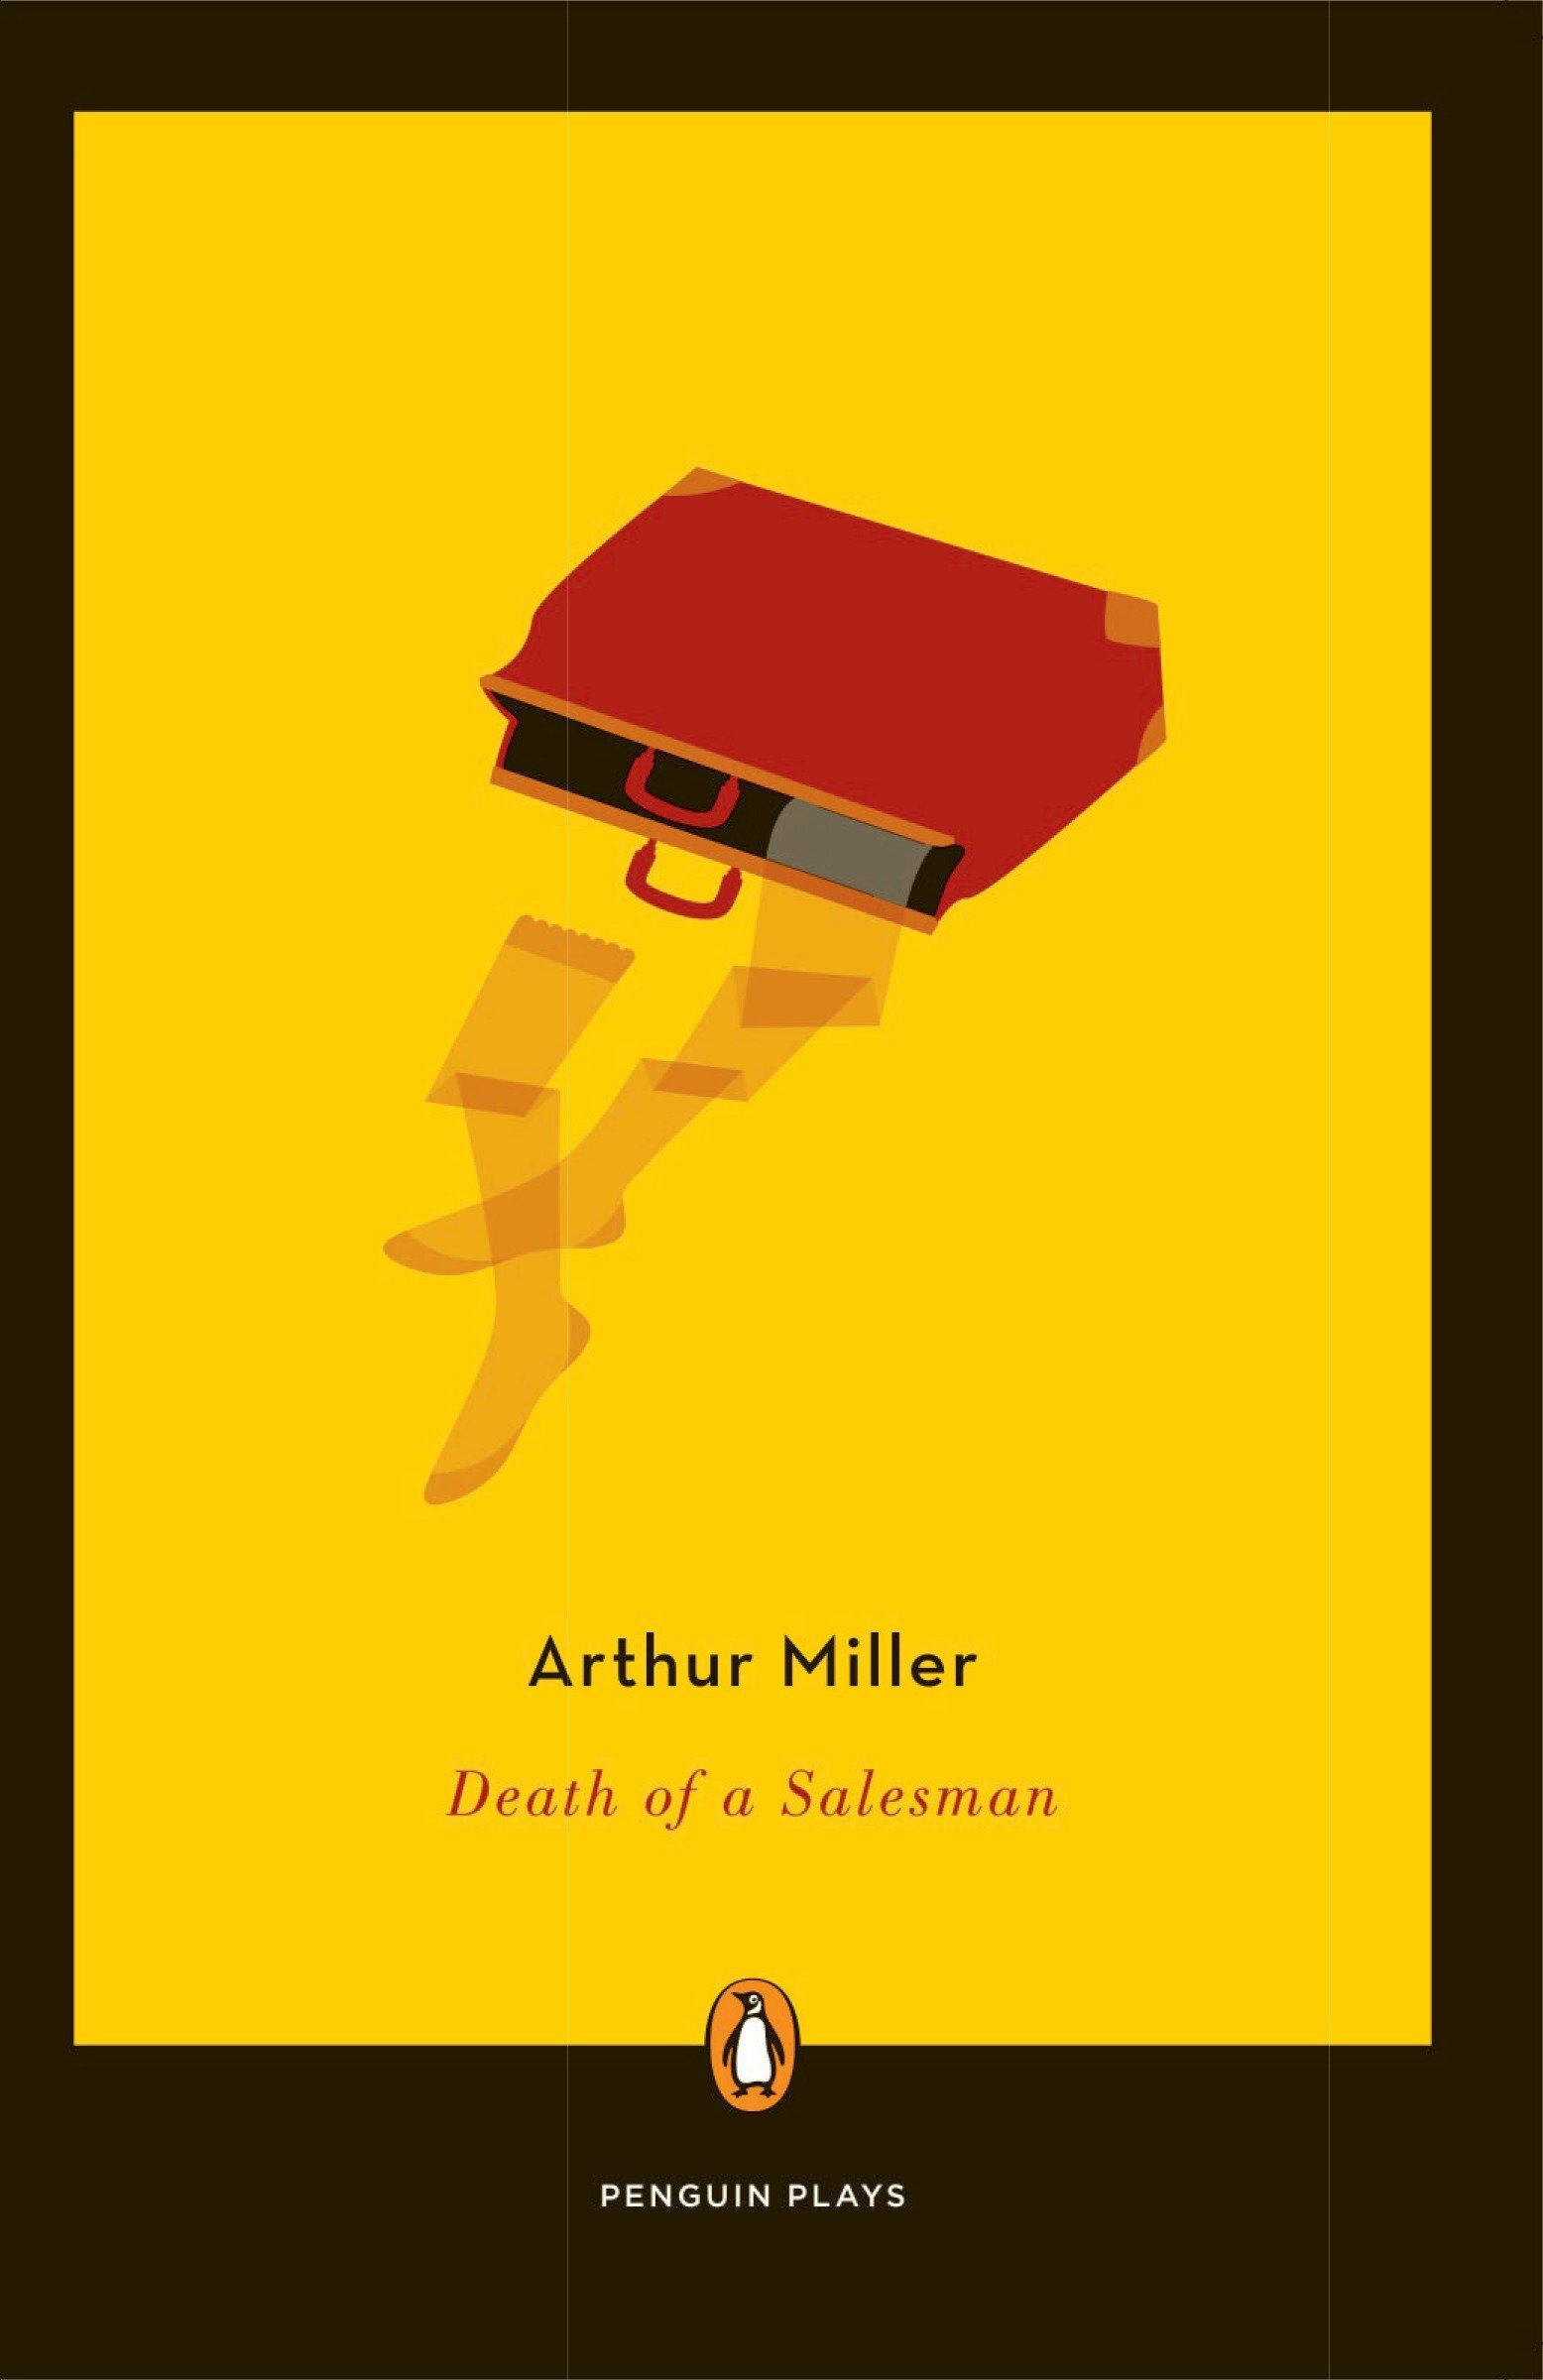 34) Death of a Salesman - If there ever a story to capture the transparency and futility of wealth as a means to happiness, it's Arthur Miller's Death of a Salesman. Undoubtedly one of the best American plays of our time,